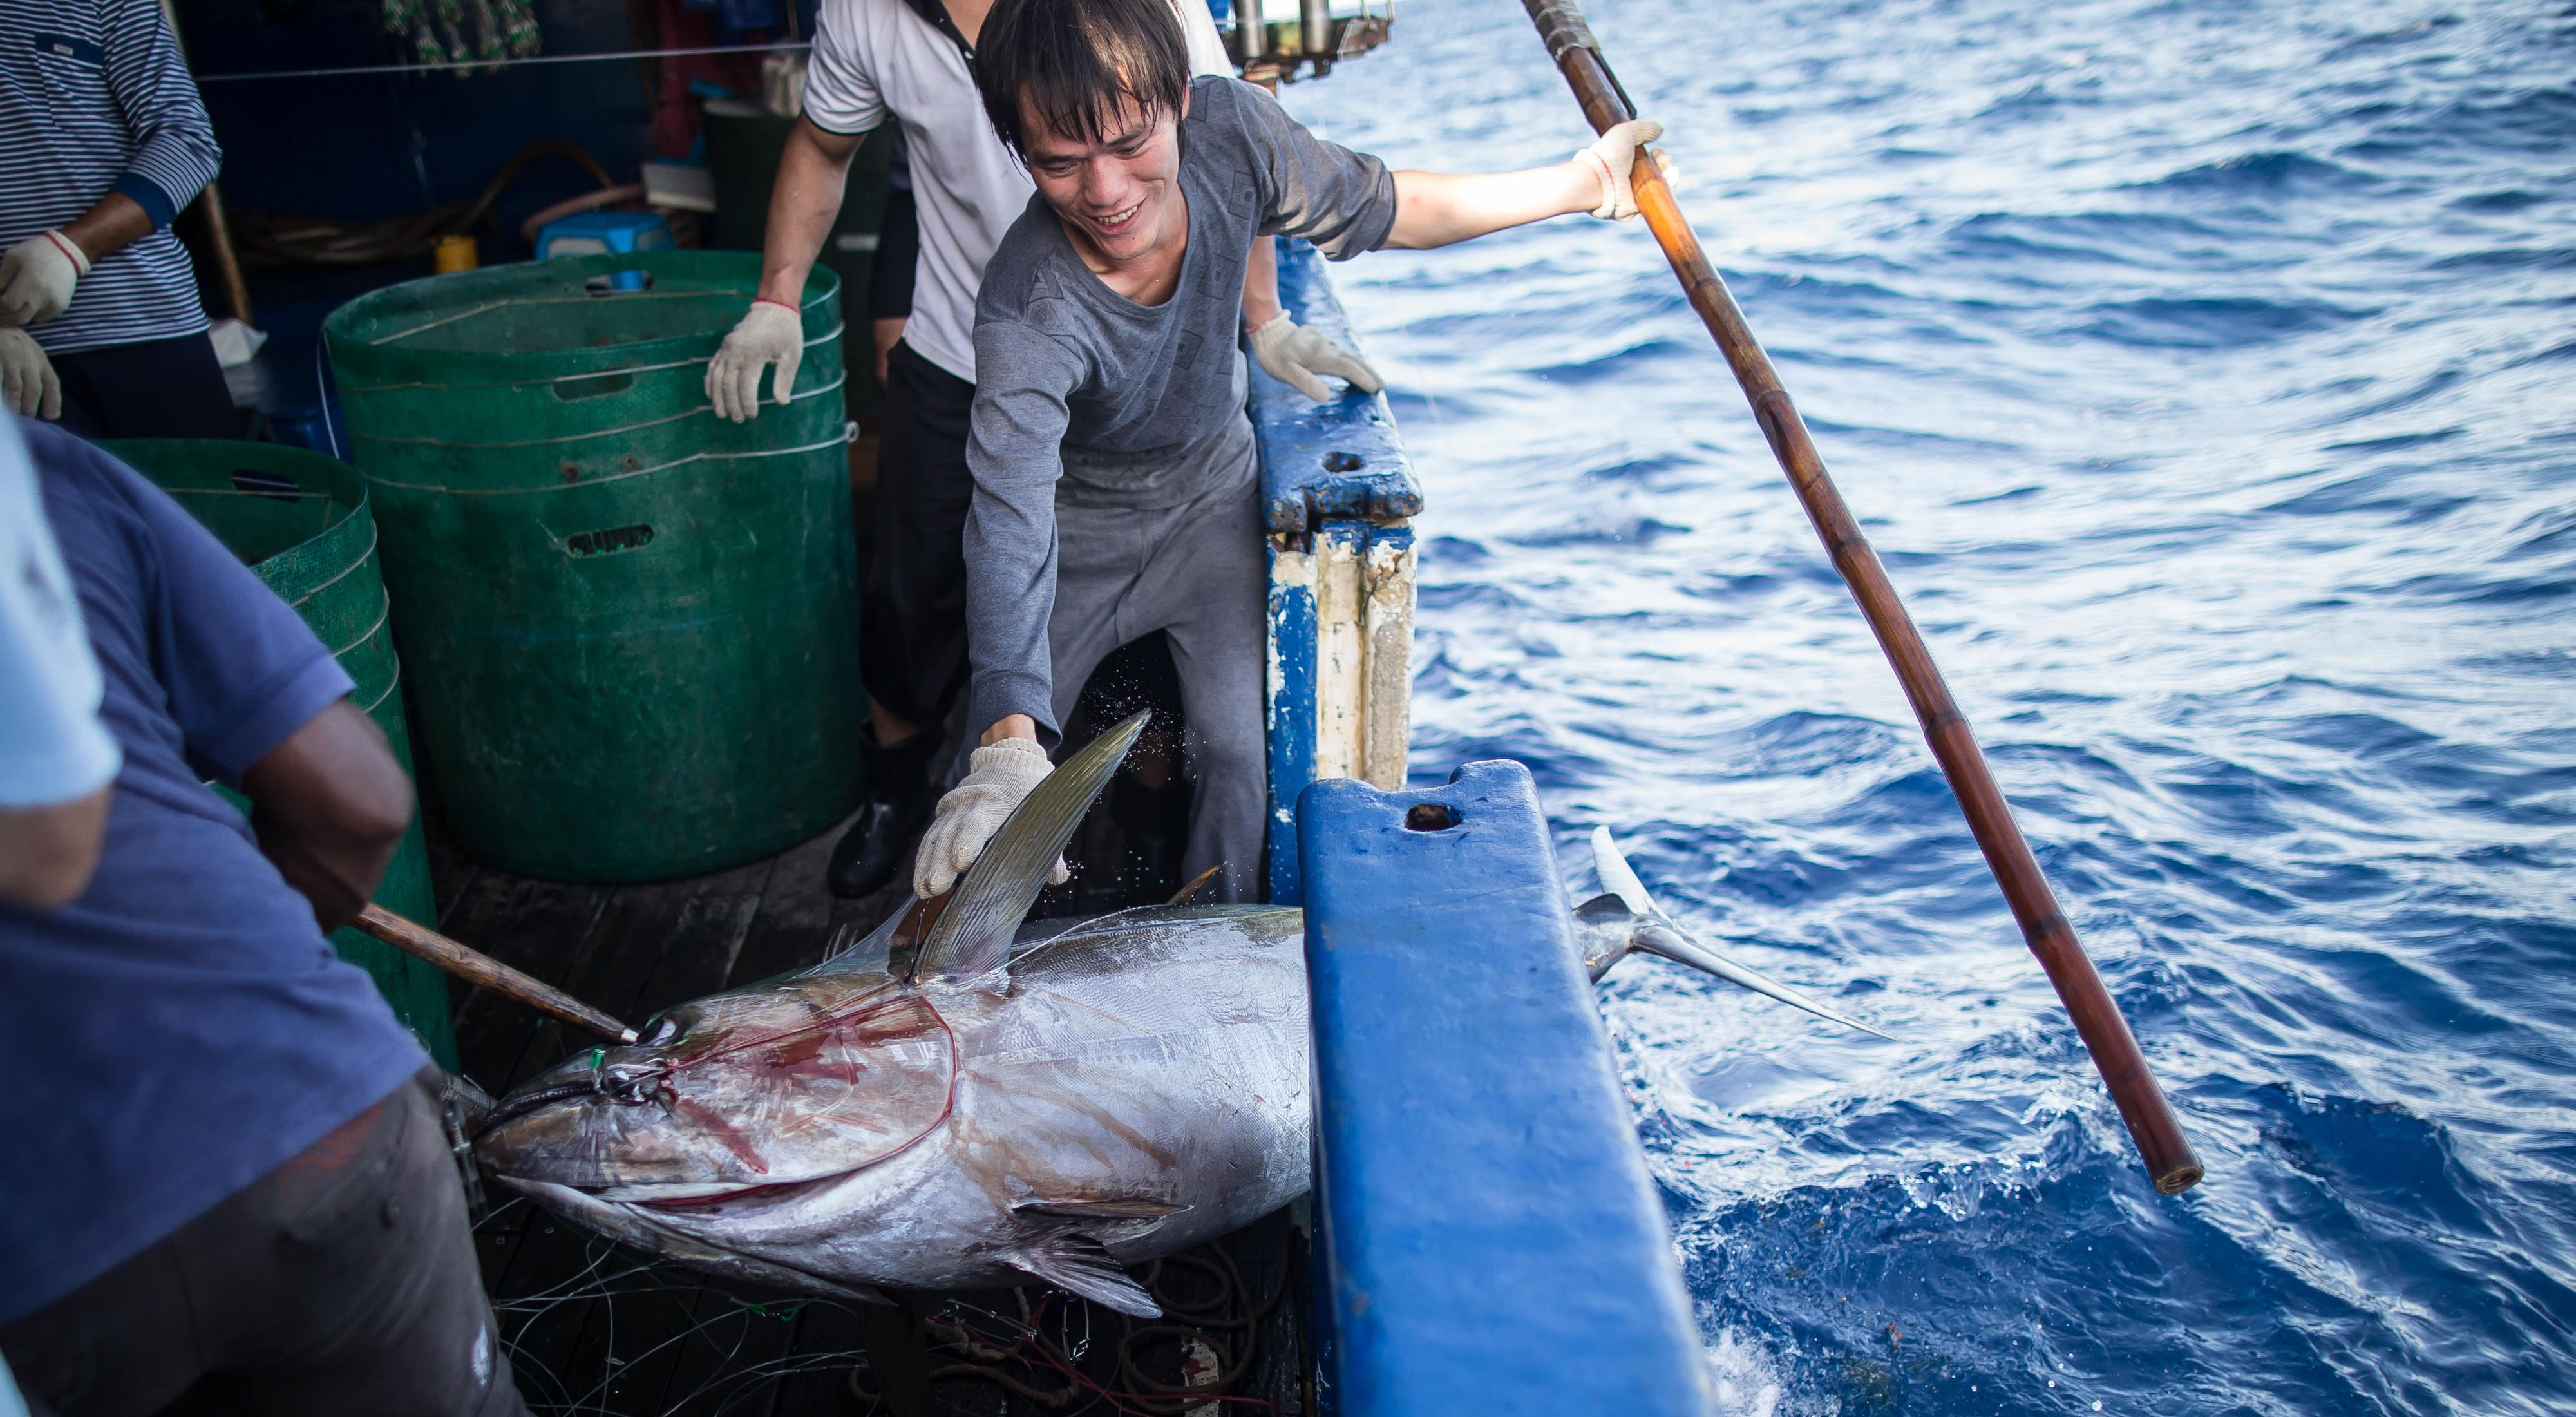 Fishing for bigeye tuna in the Pacific